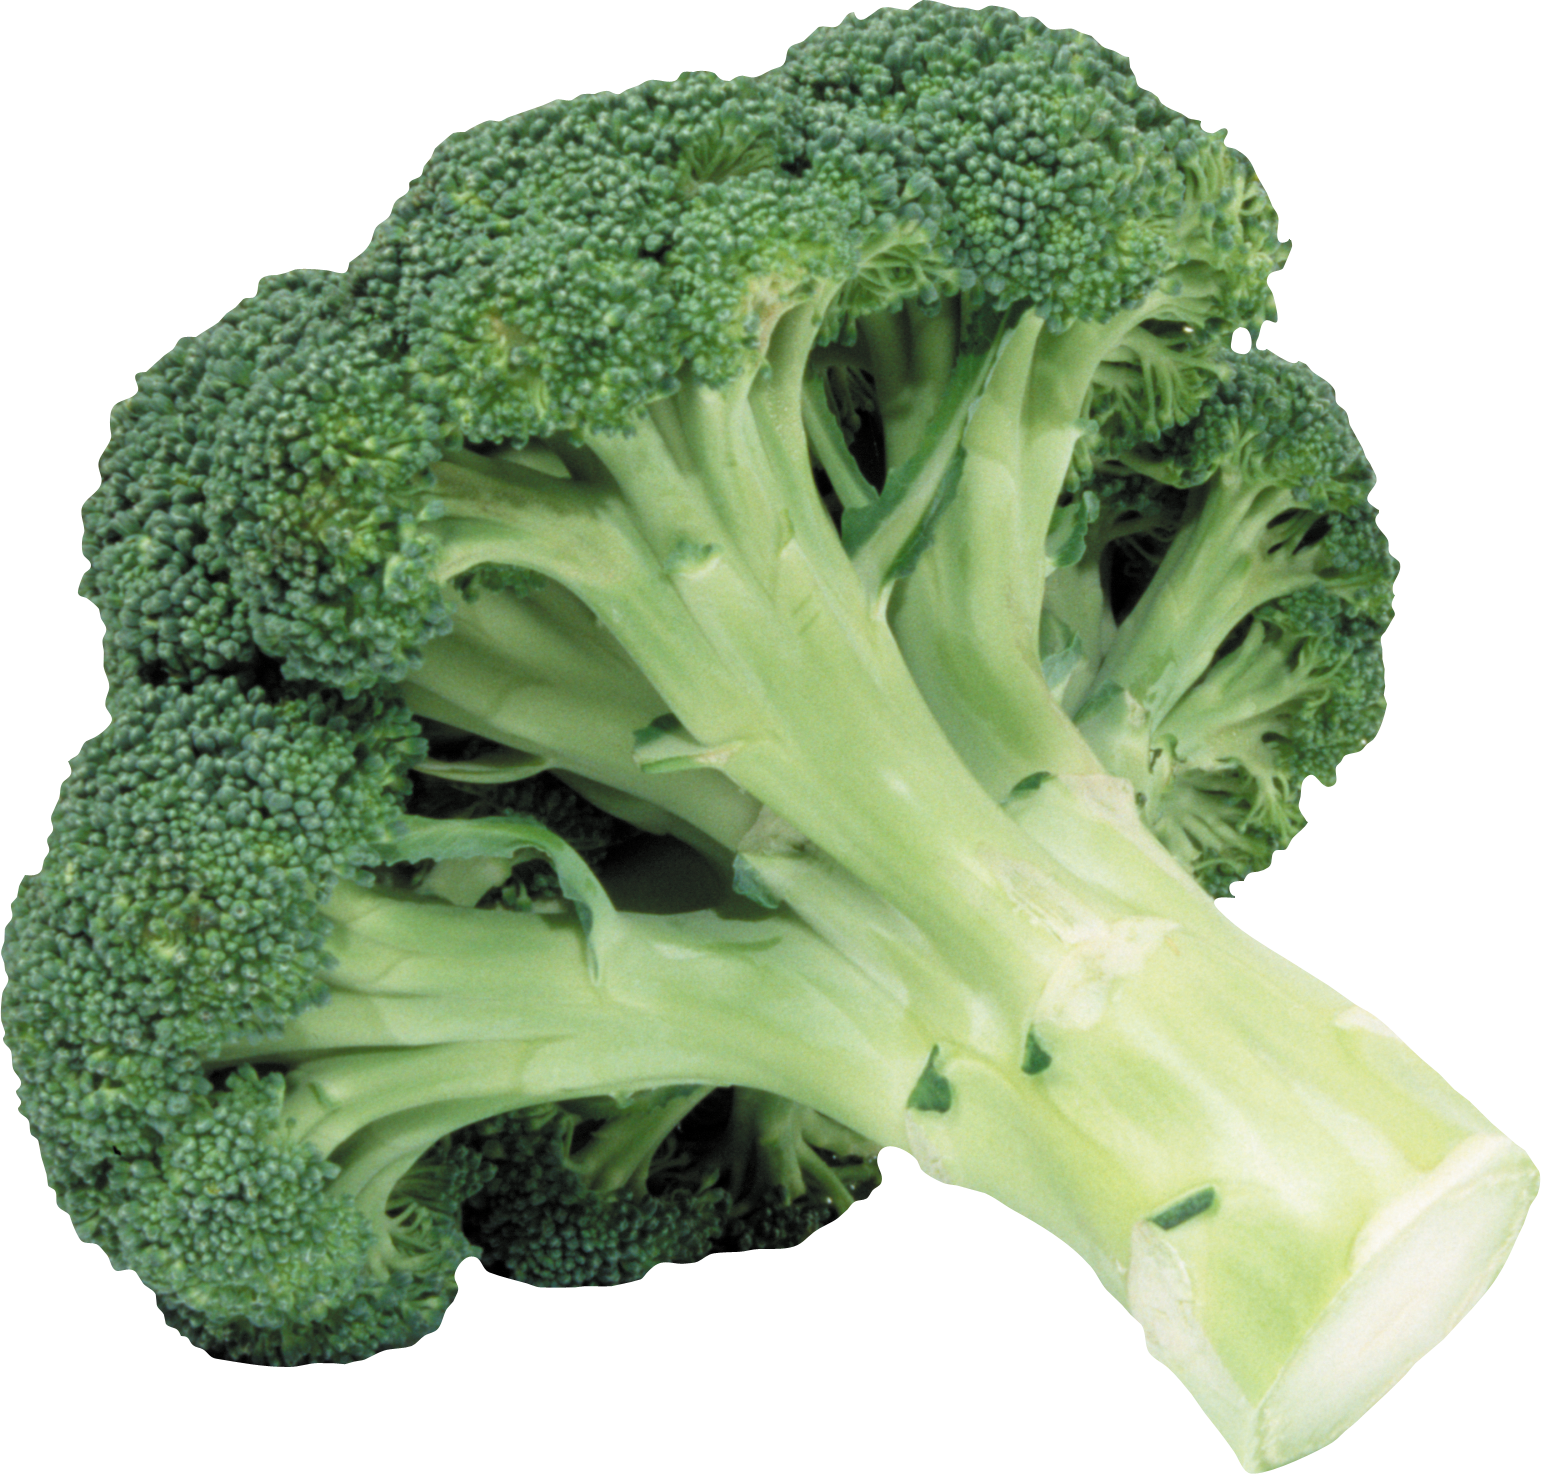 Broccoli Png Image - Broccoli, Transparent background PNG HD thumbnail